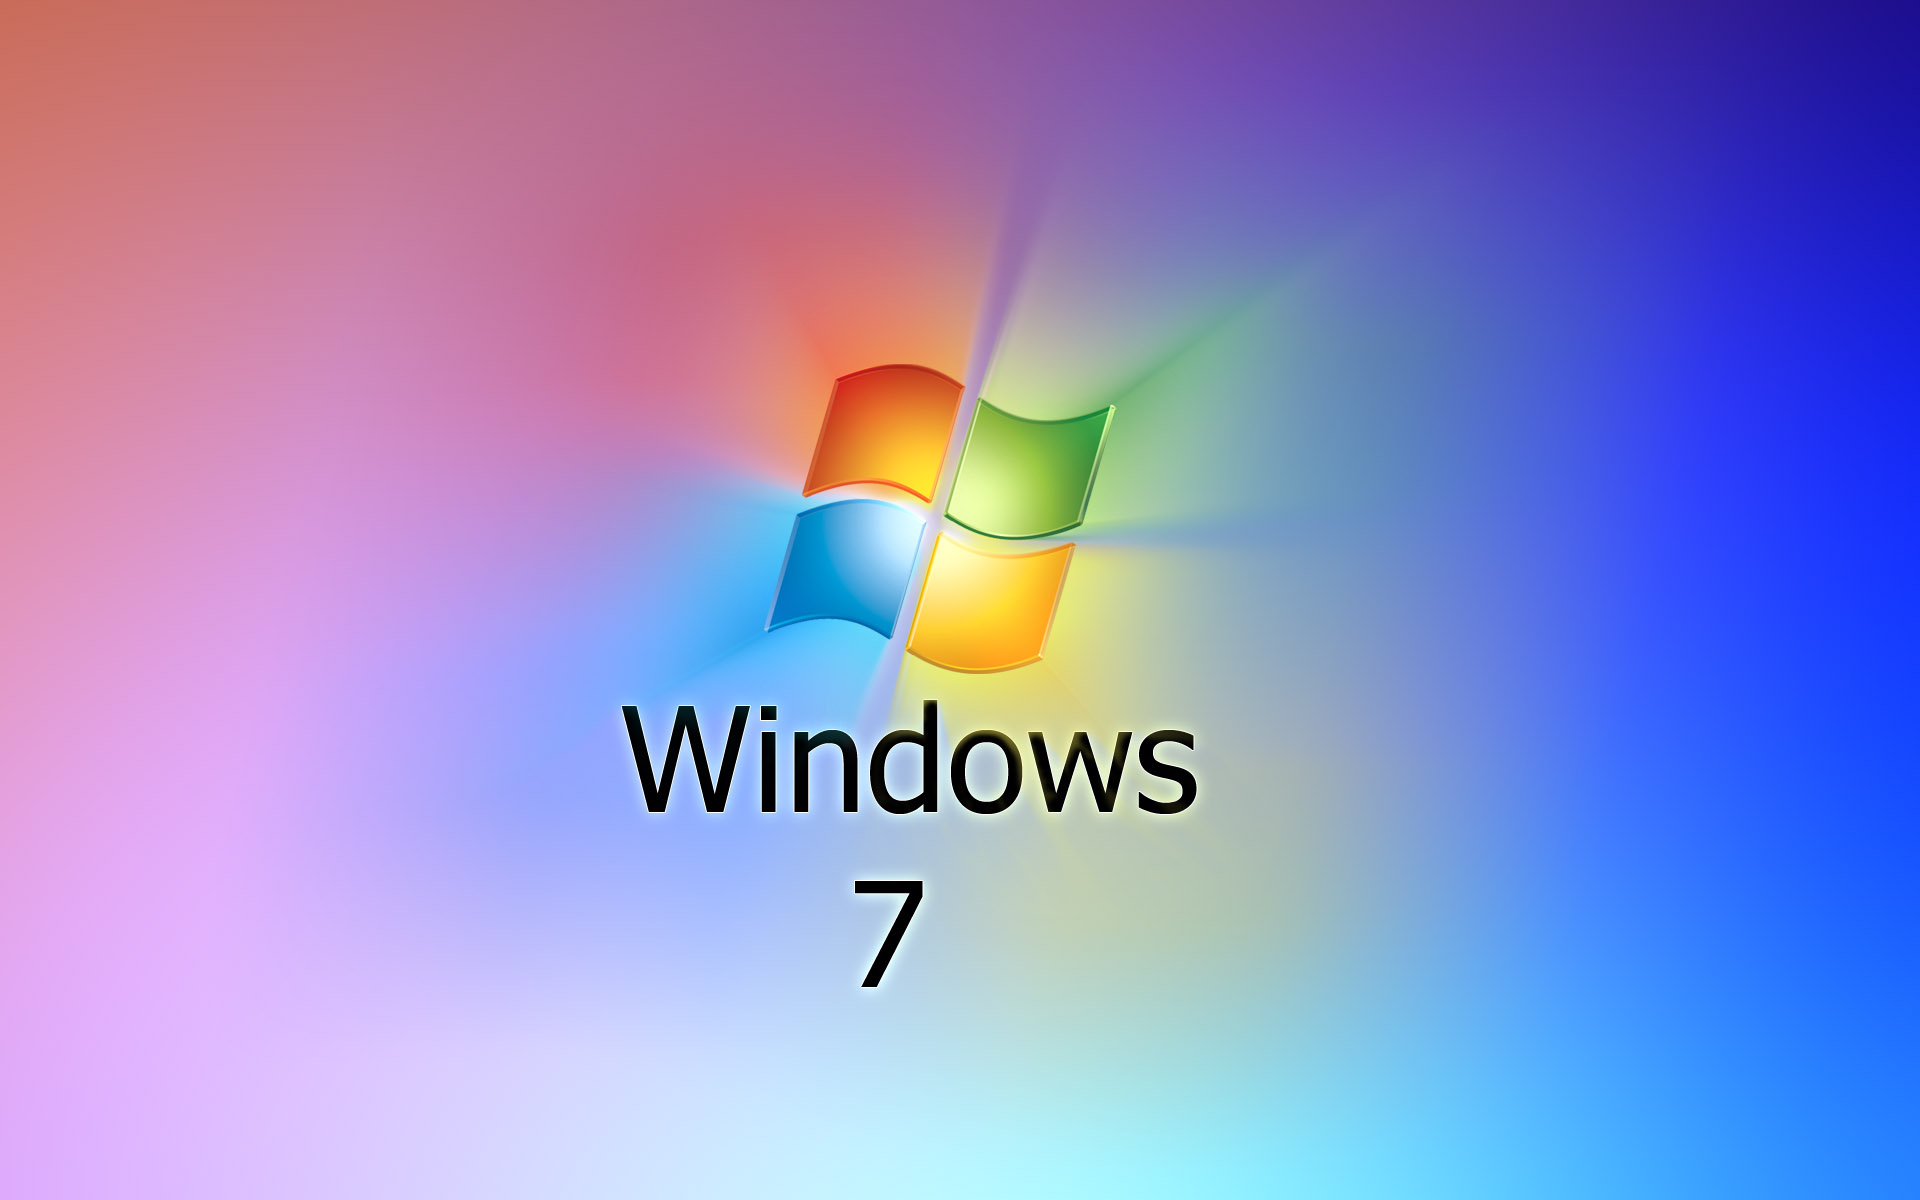 windows-7-wallpapers4desktop-com-099